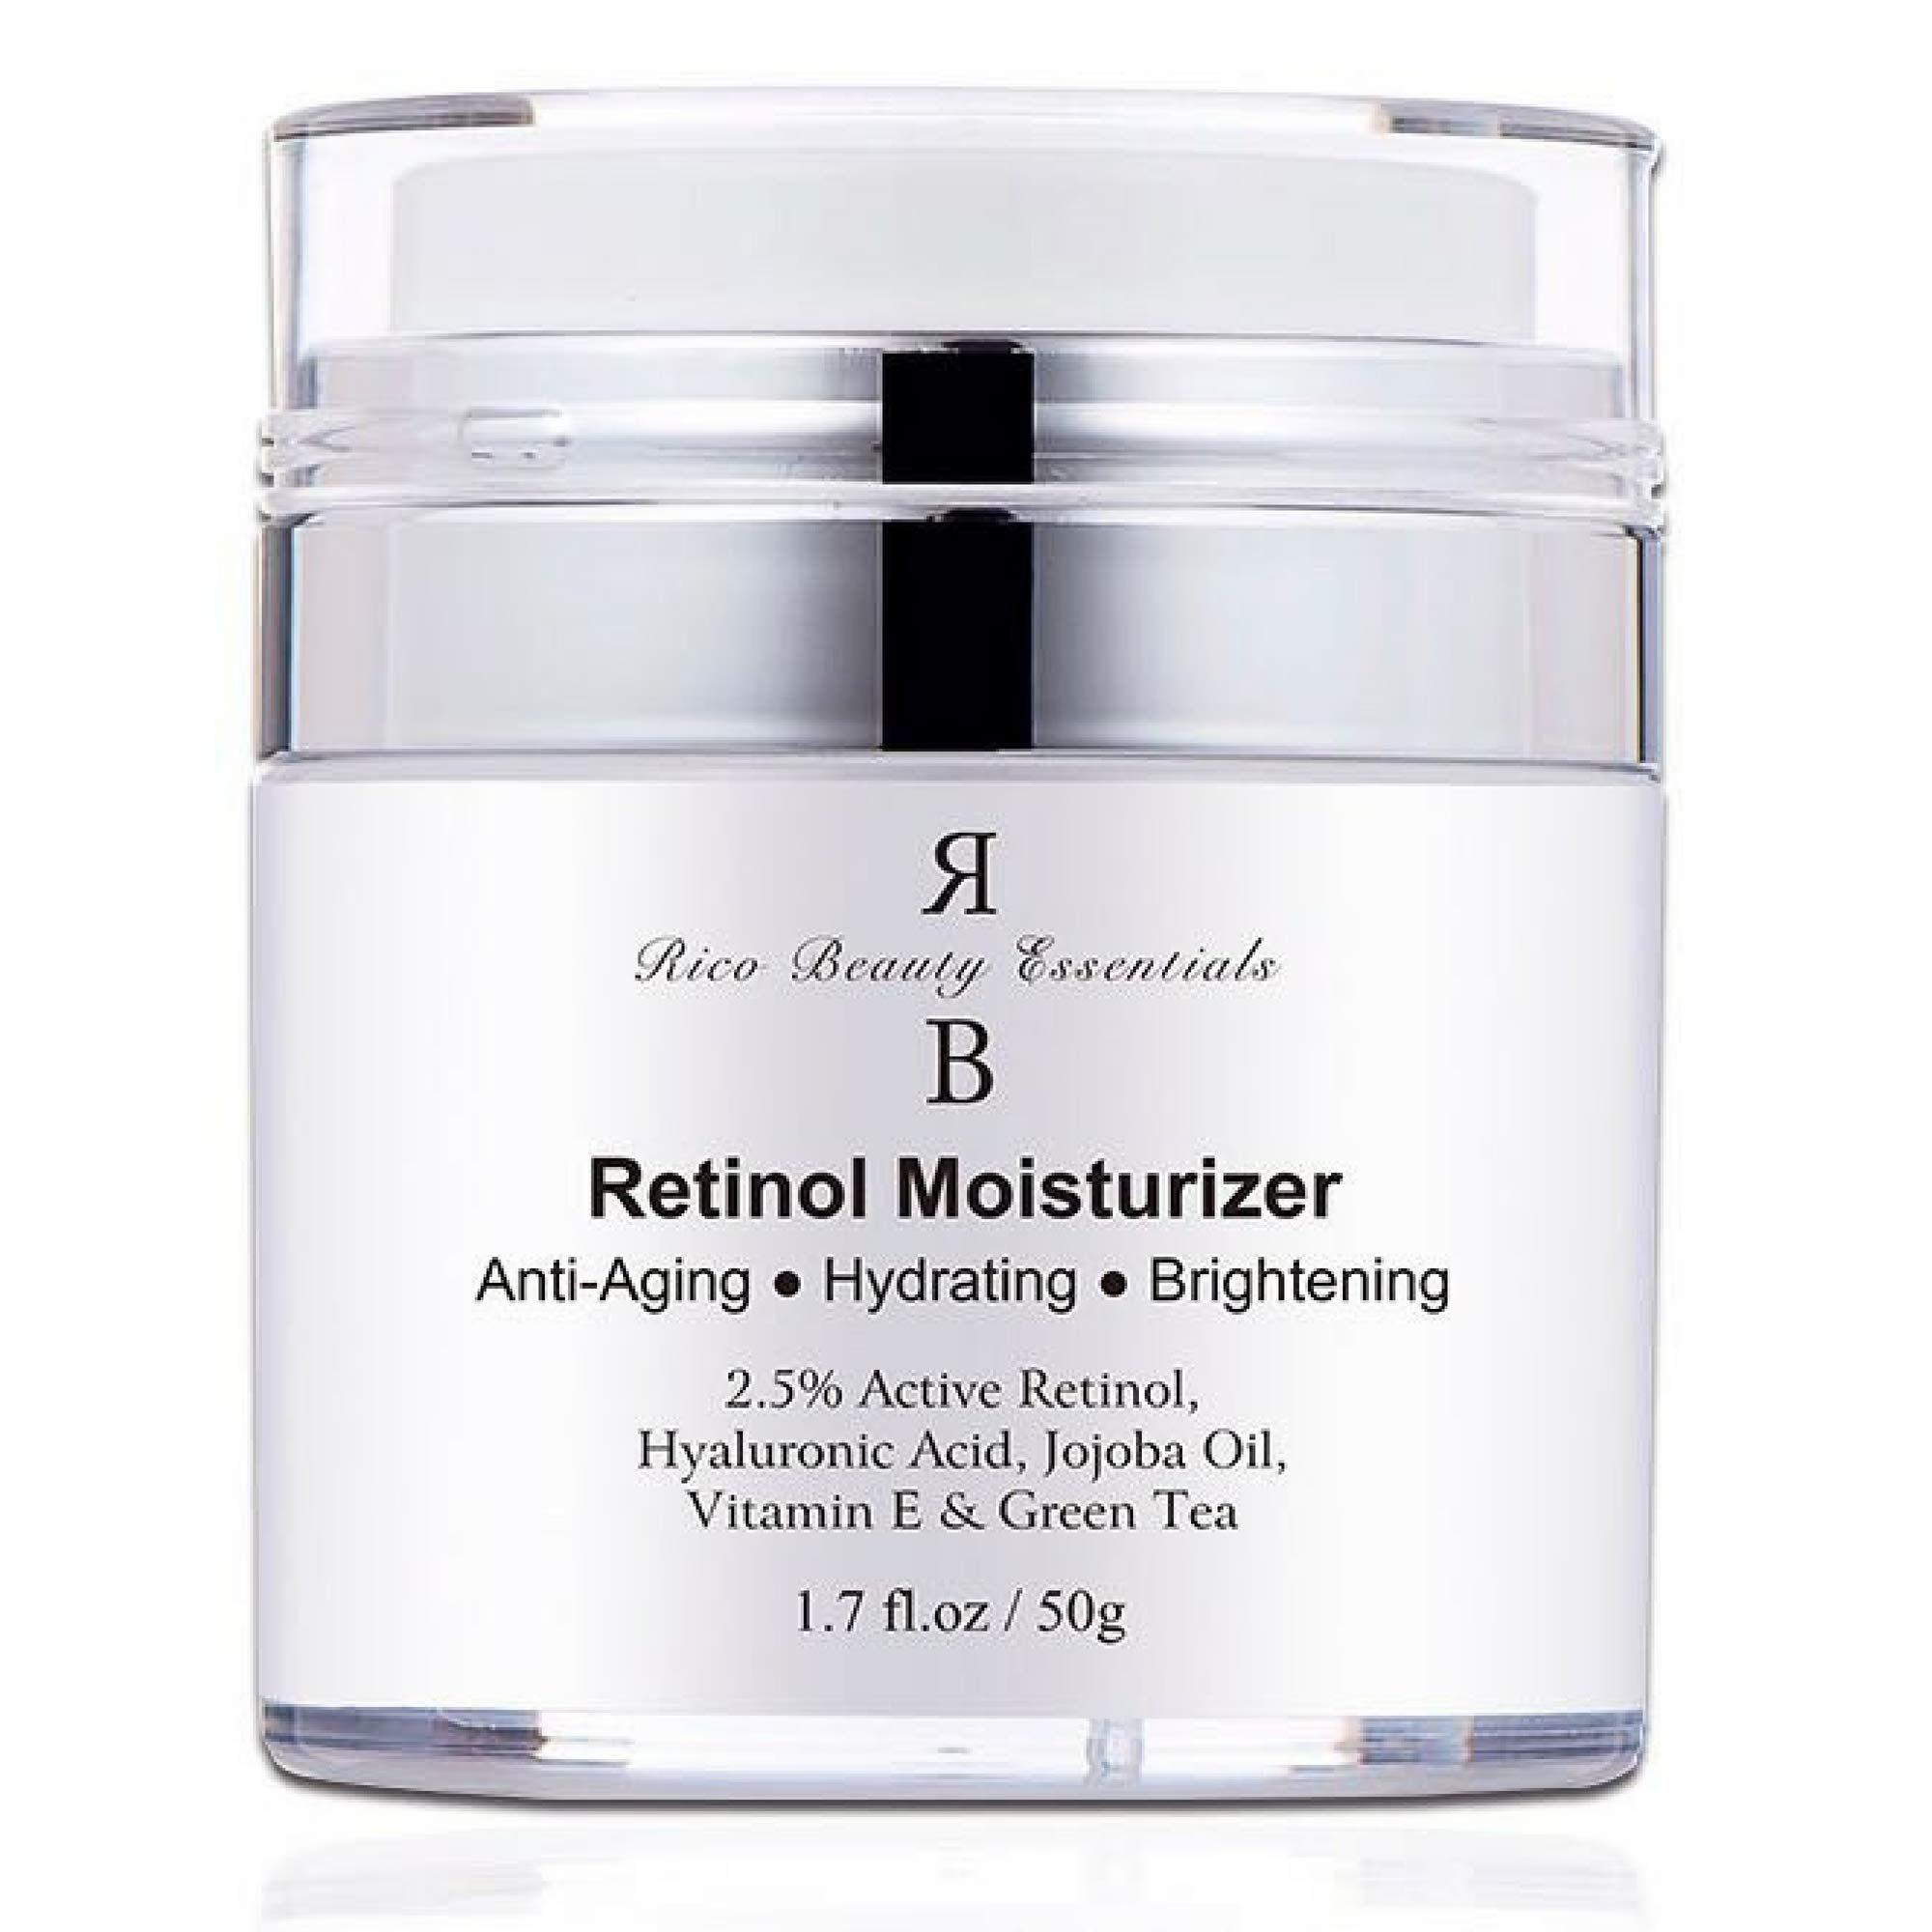 Retinol Moisturizer Cream for Face - With Retinol , Hyaluronic Acid, Vitamin E and Green Tea. Best Anti- Aging Night and Day Time Moisturizing Cream 1.7 FL Oz by Rico Beauty Essentials